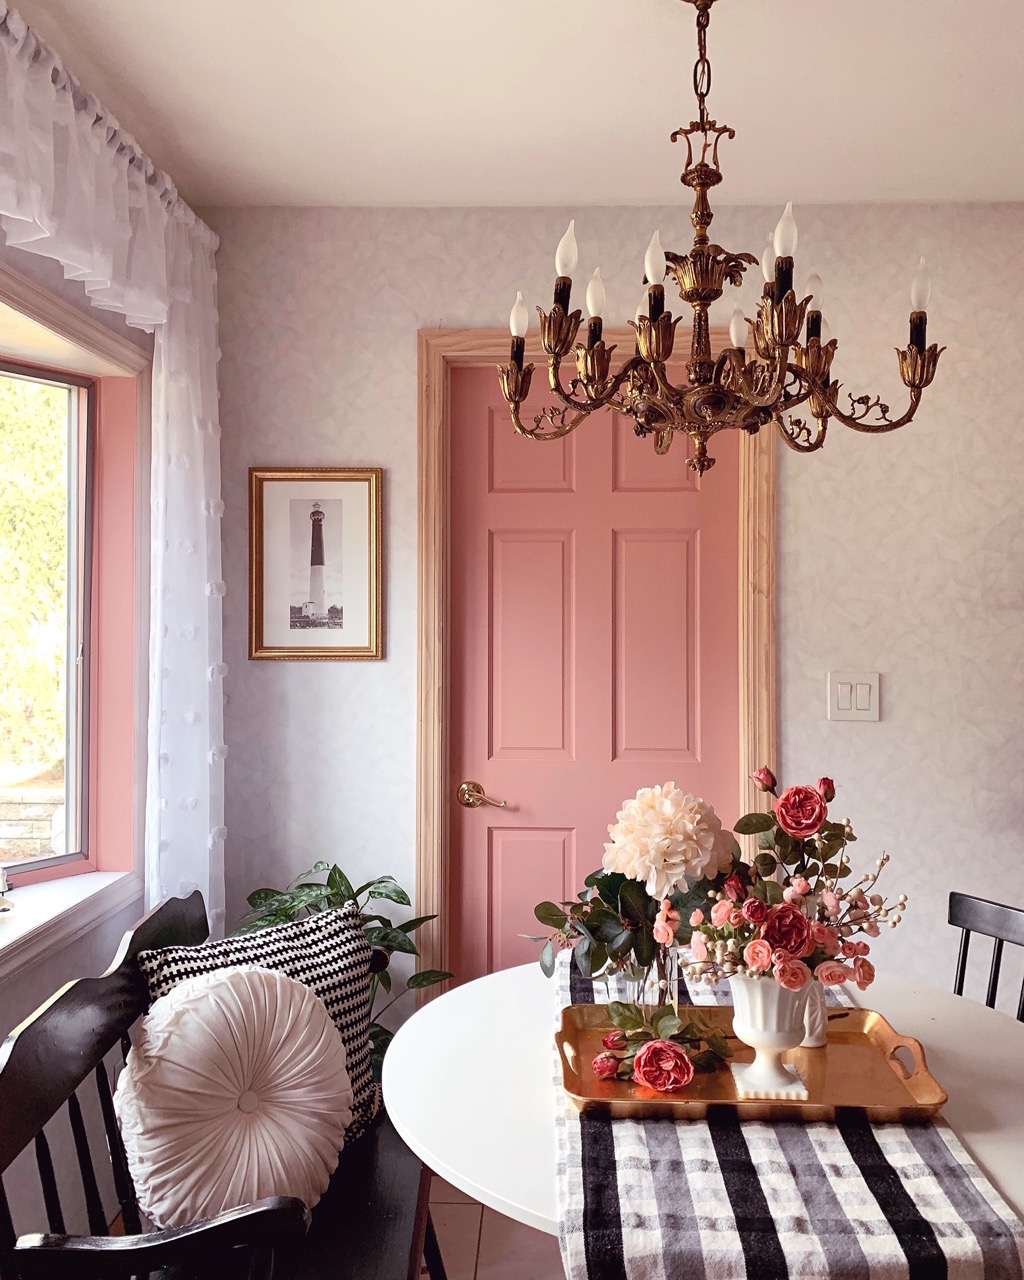 Granby frame style in dining room